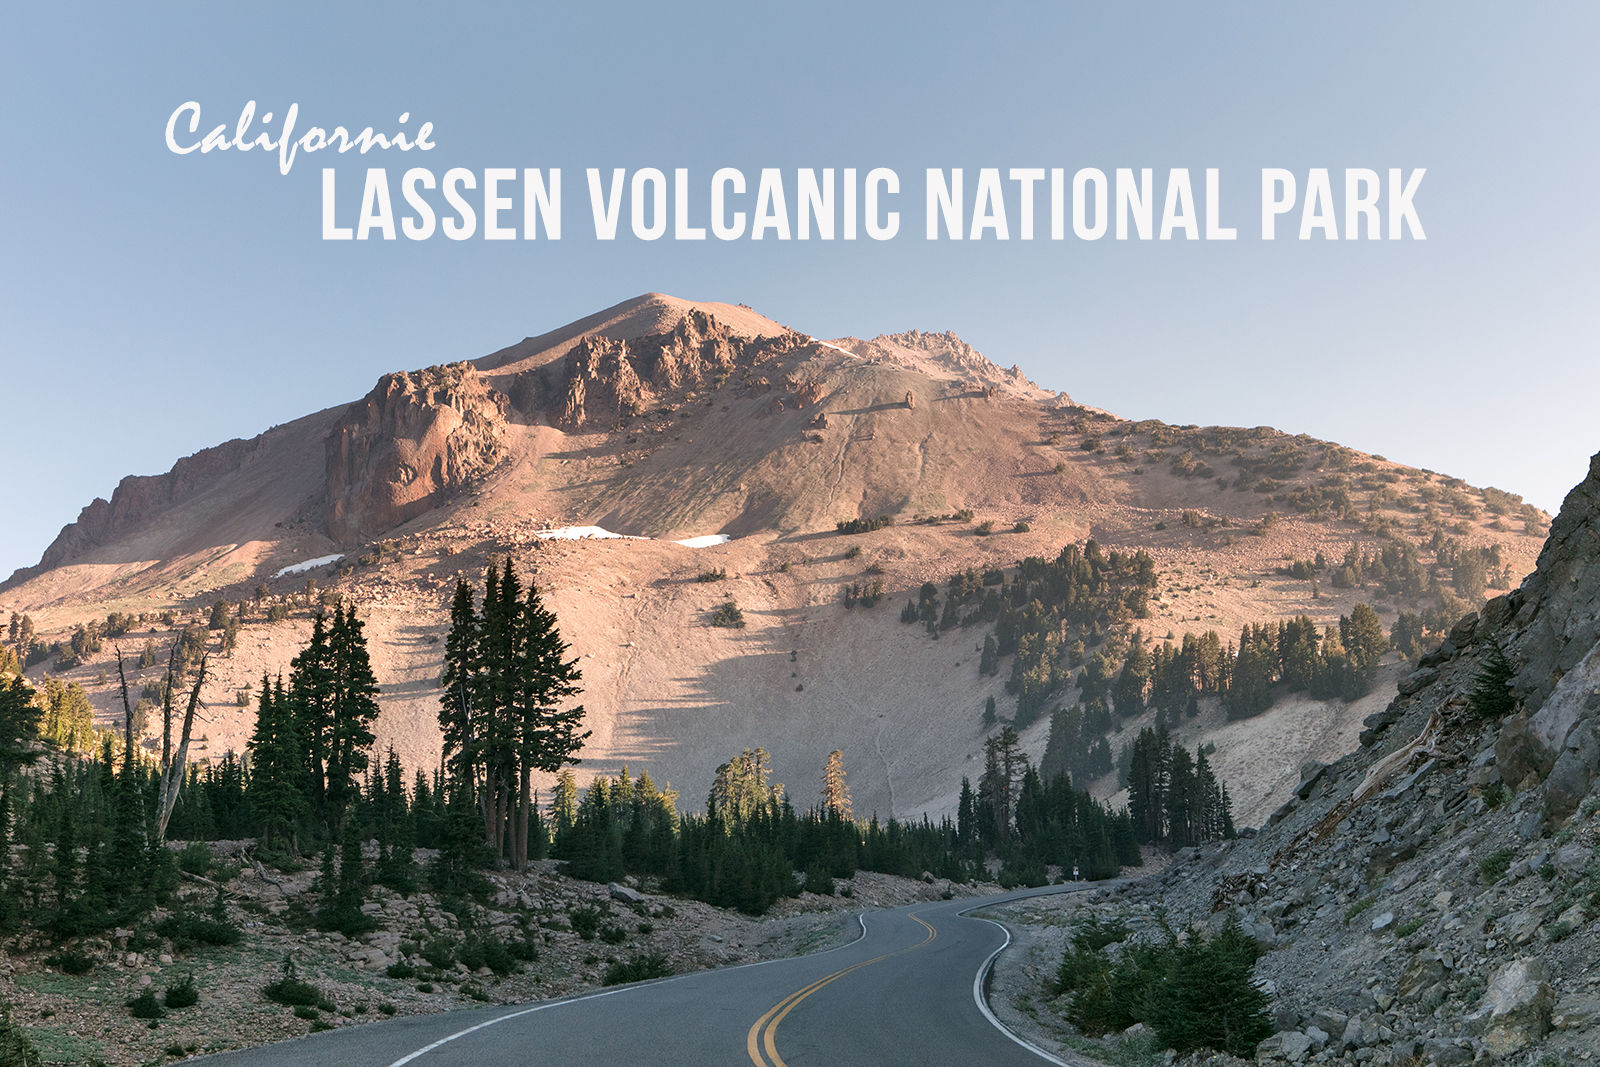 Parc national de Lassen volcanic en Californie